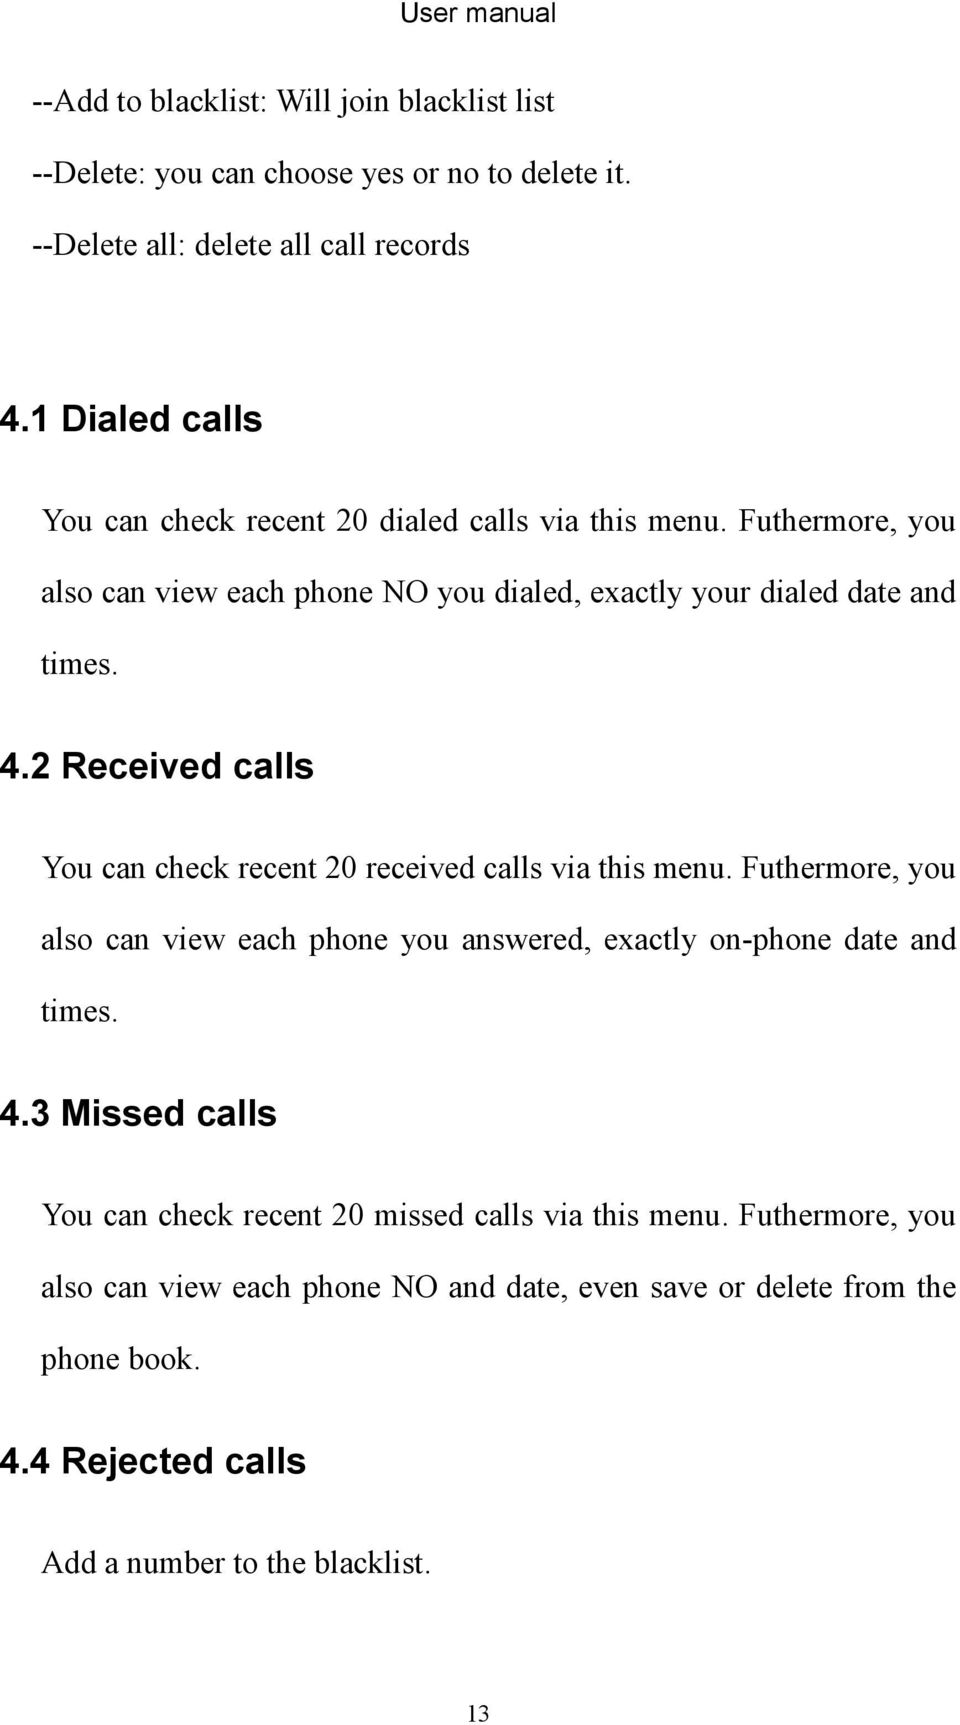 2 Received calls You can check recent 20 received calls via this menu. Futhermore, you also can view each phone you answered, exactly on-phone date and times. 4.